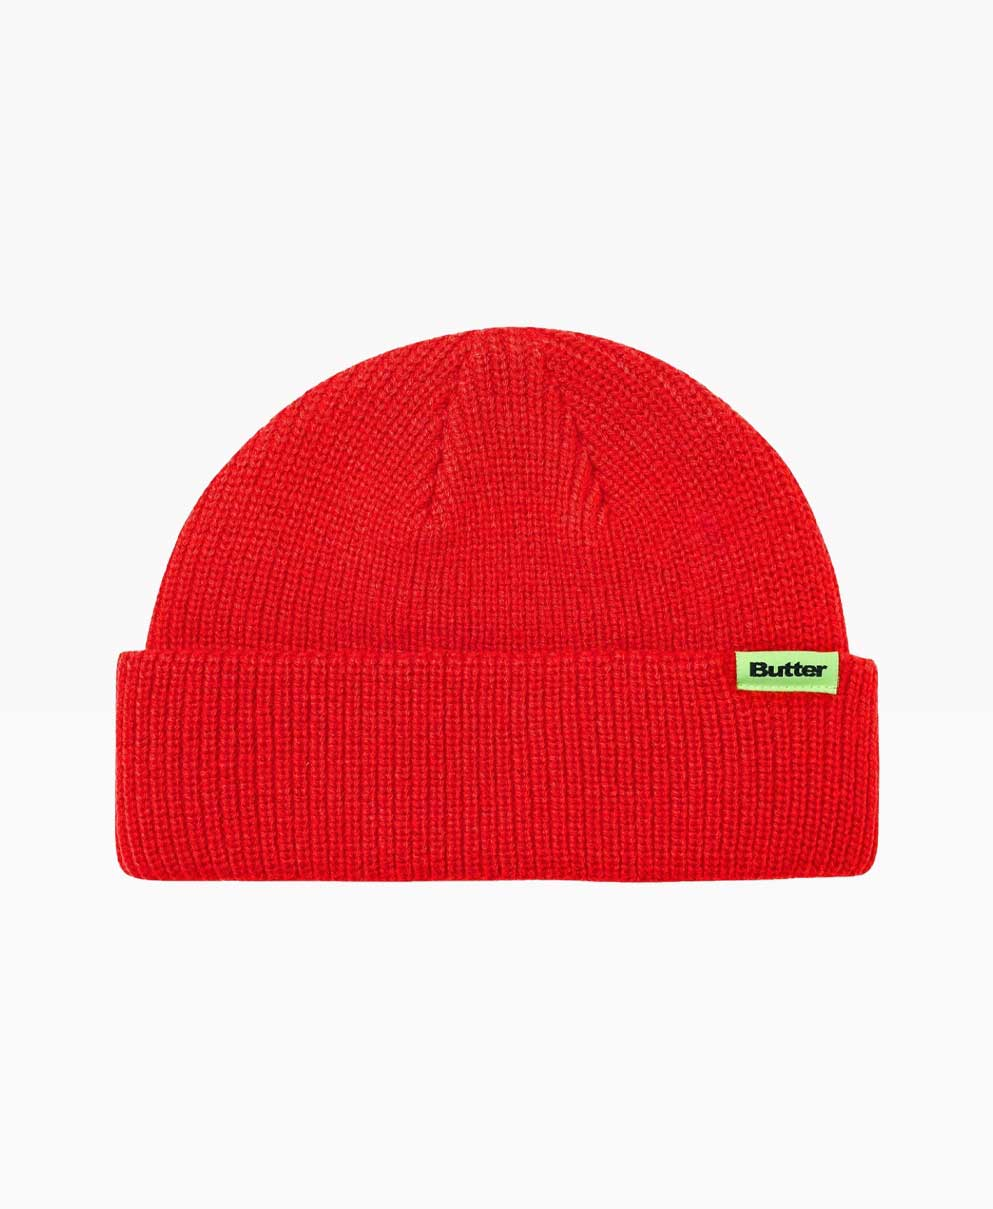 Butter Goods Wharfie Red Beanie Front